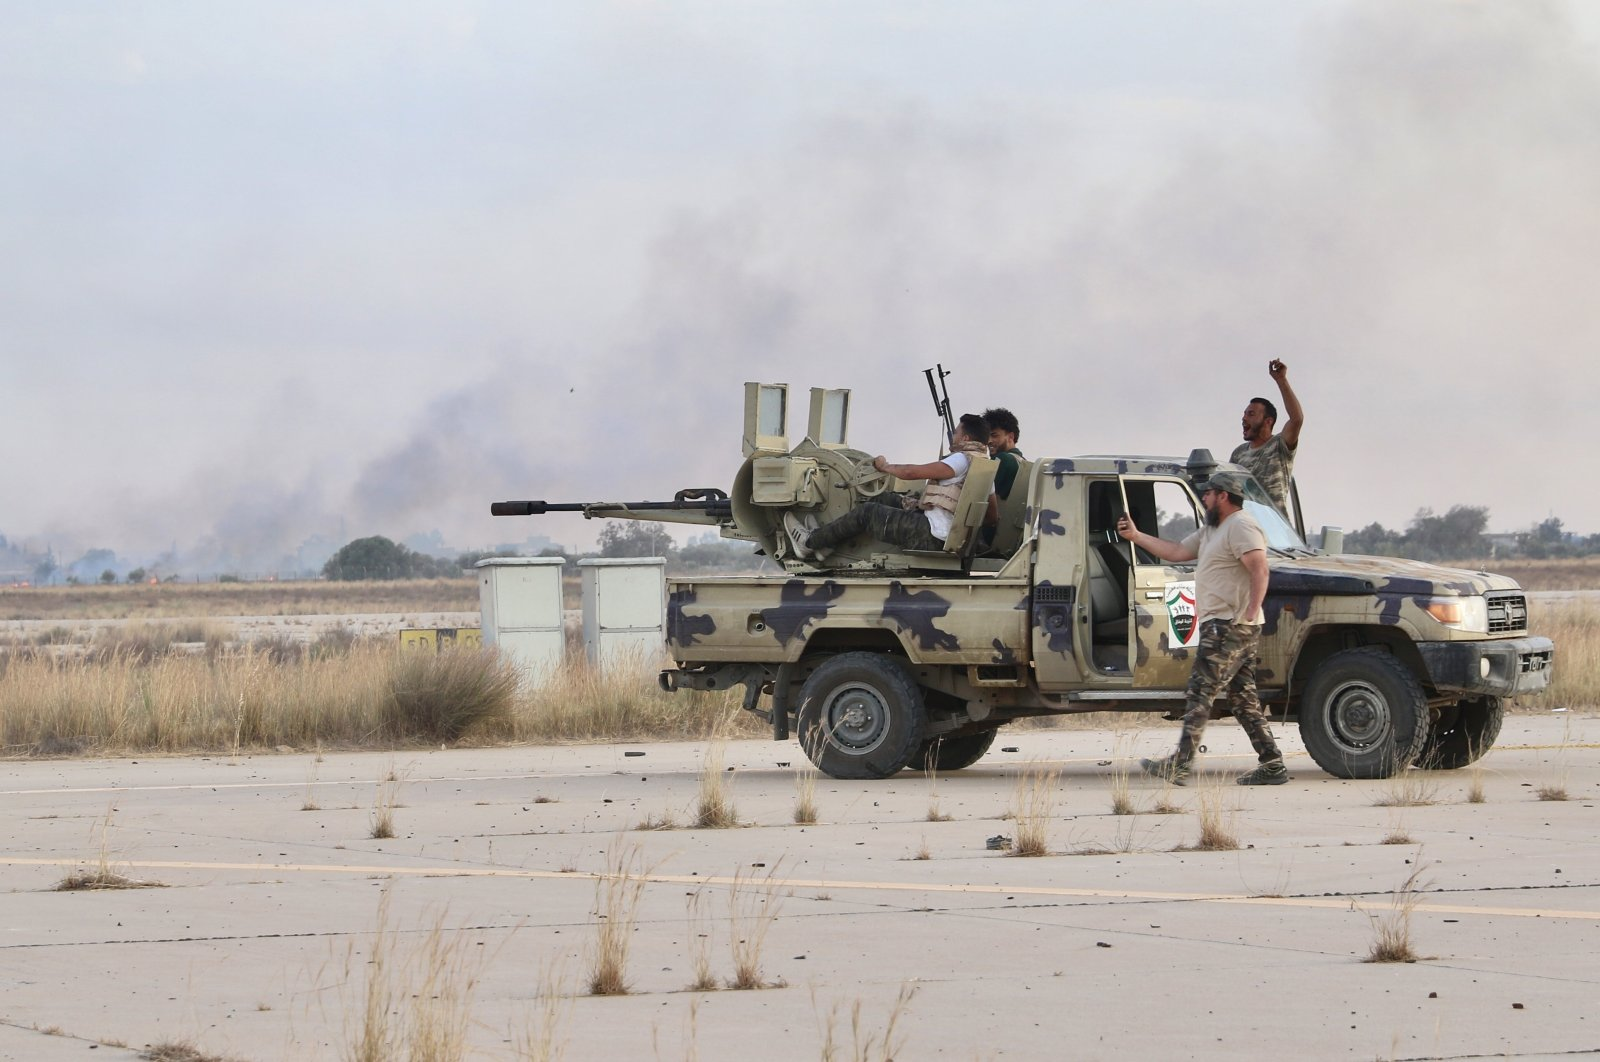 Libyan armed forces in the city of Bani Walid, June 8, 2020 (AA Photo)